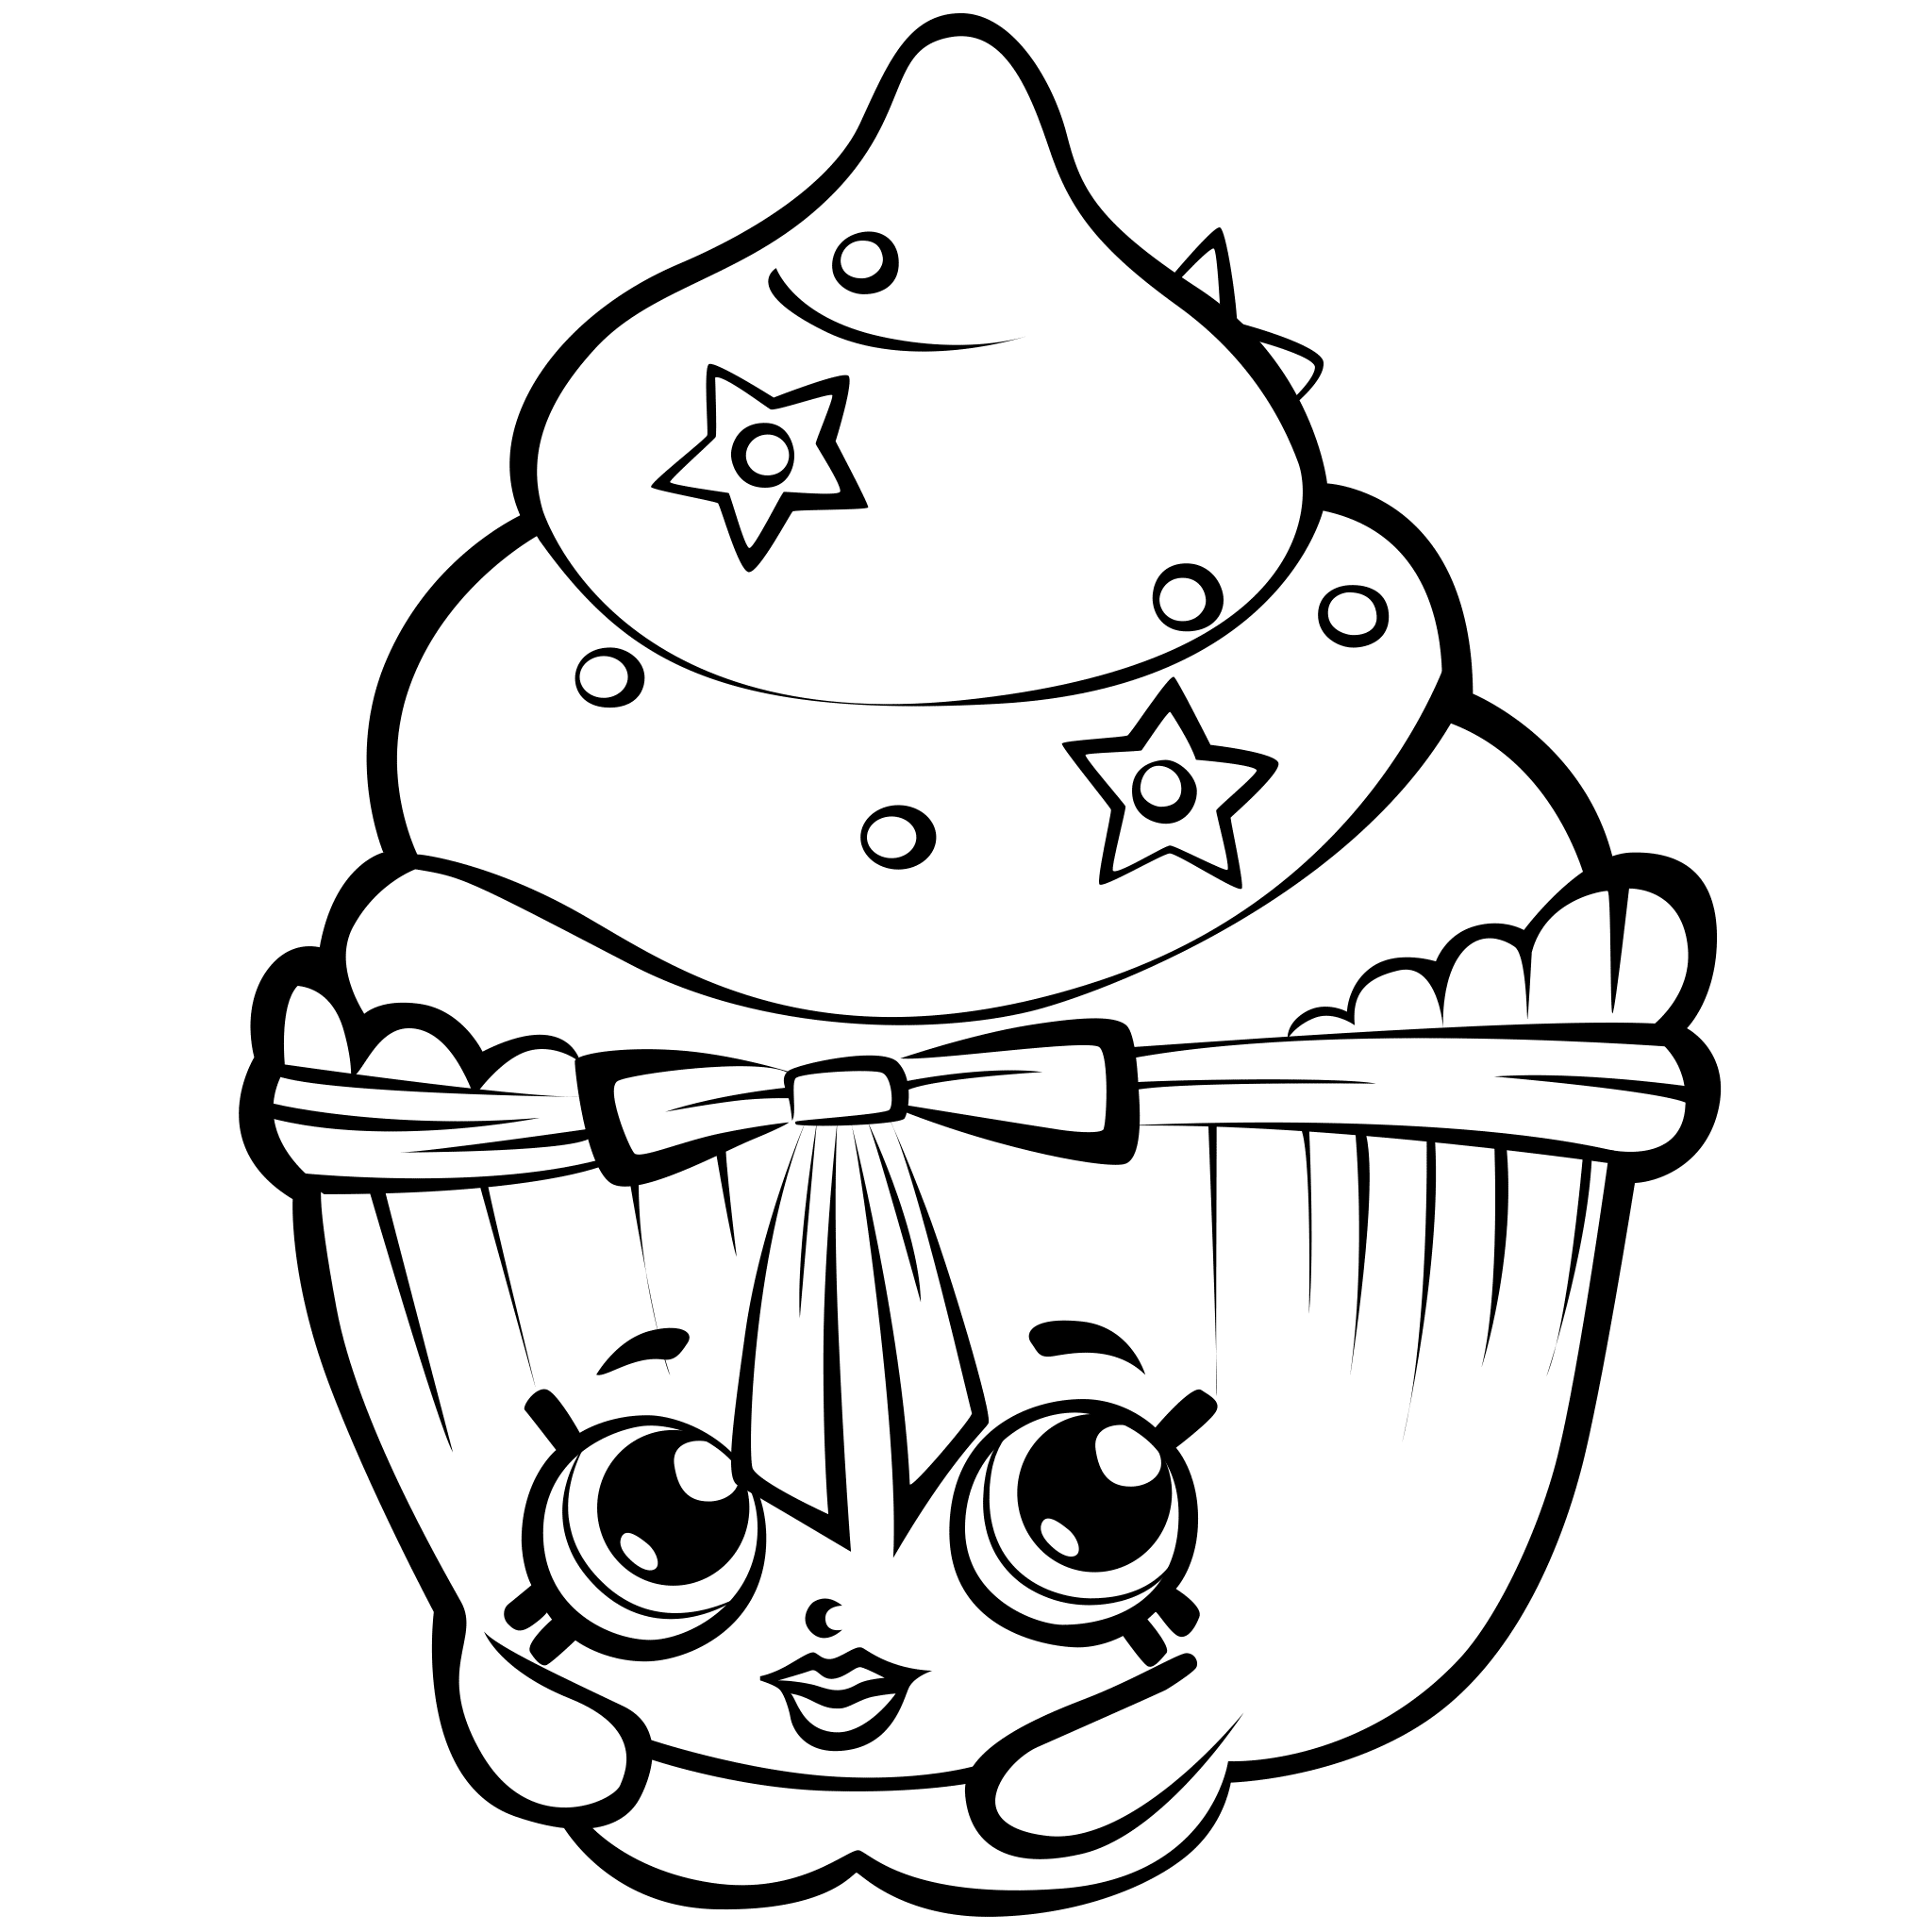 16 Unique And Rare Shopkins Coloring Pages Of